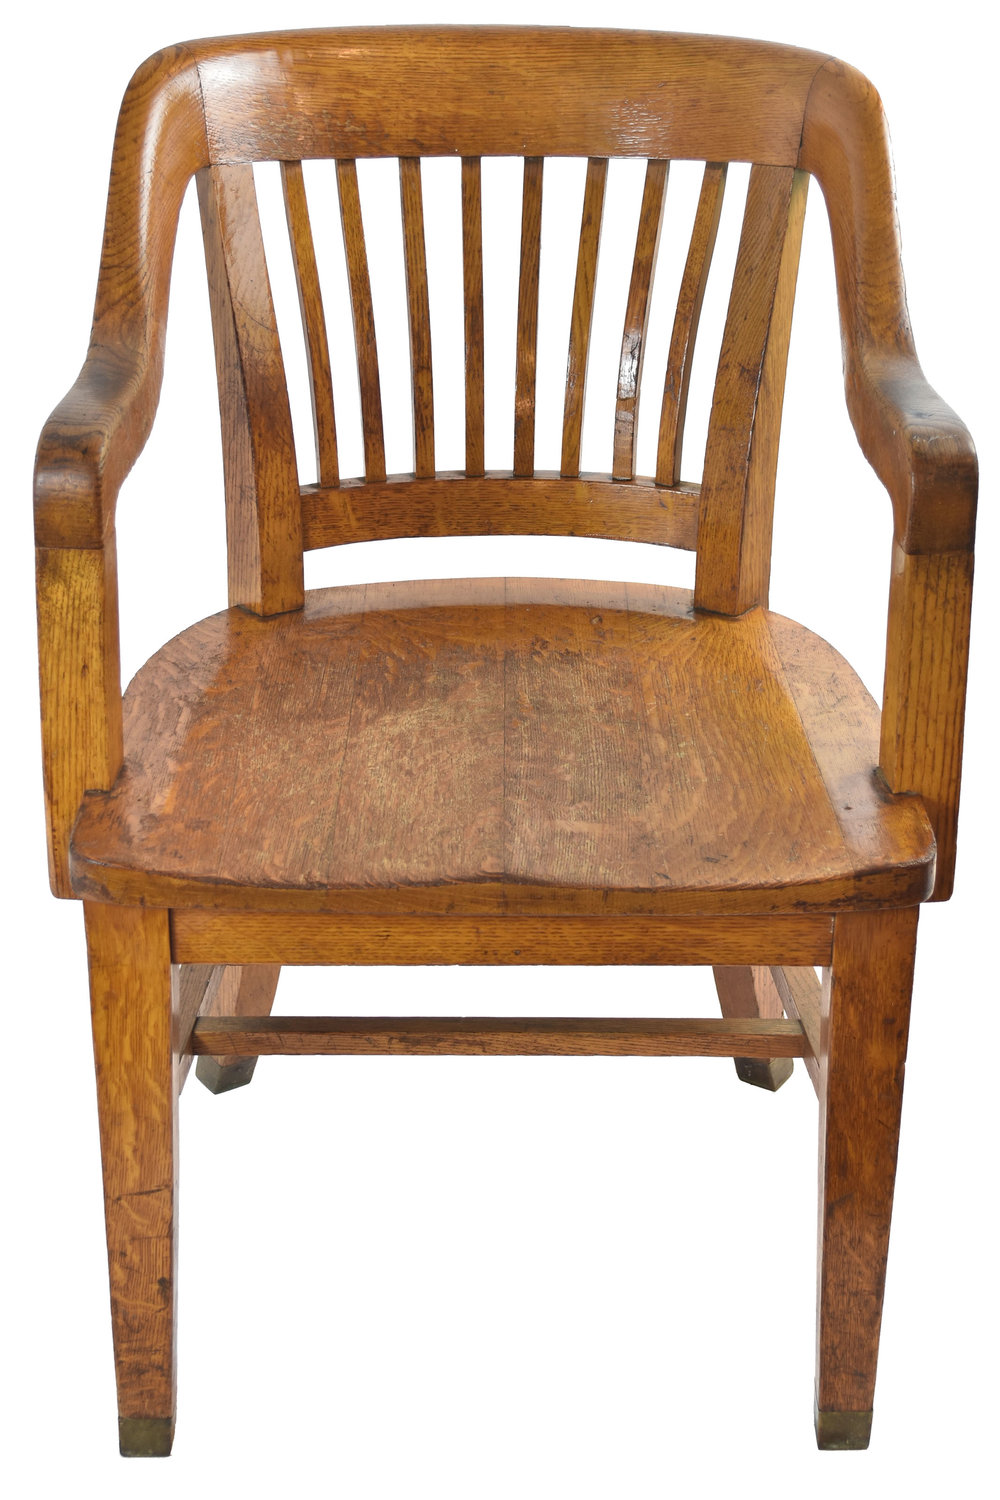 47978 courtroom oak chairs 3.jpg